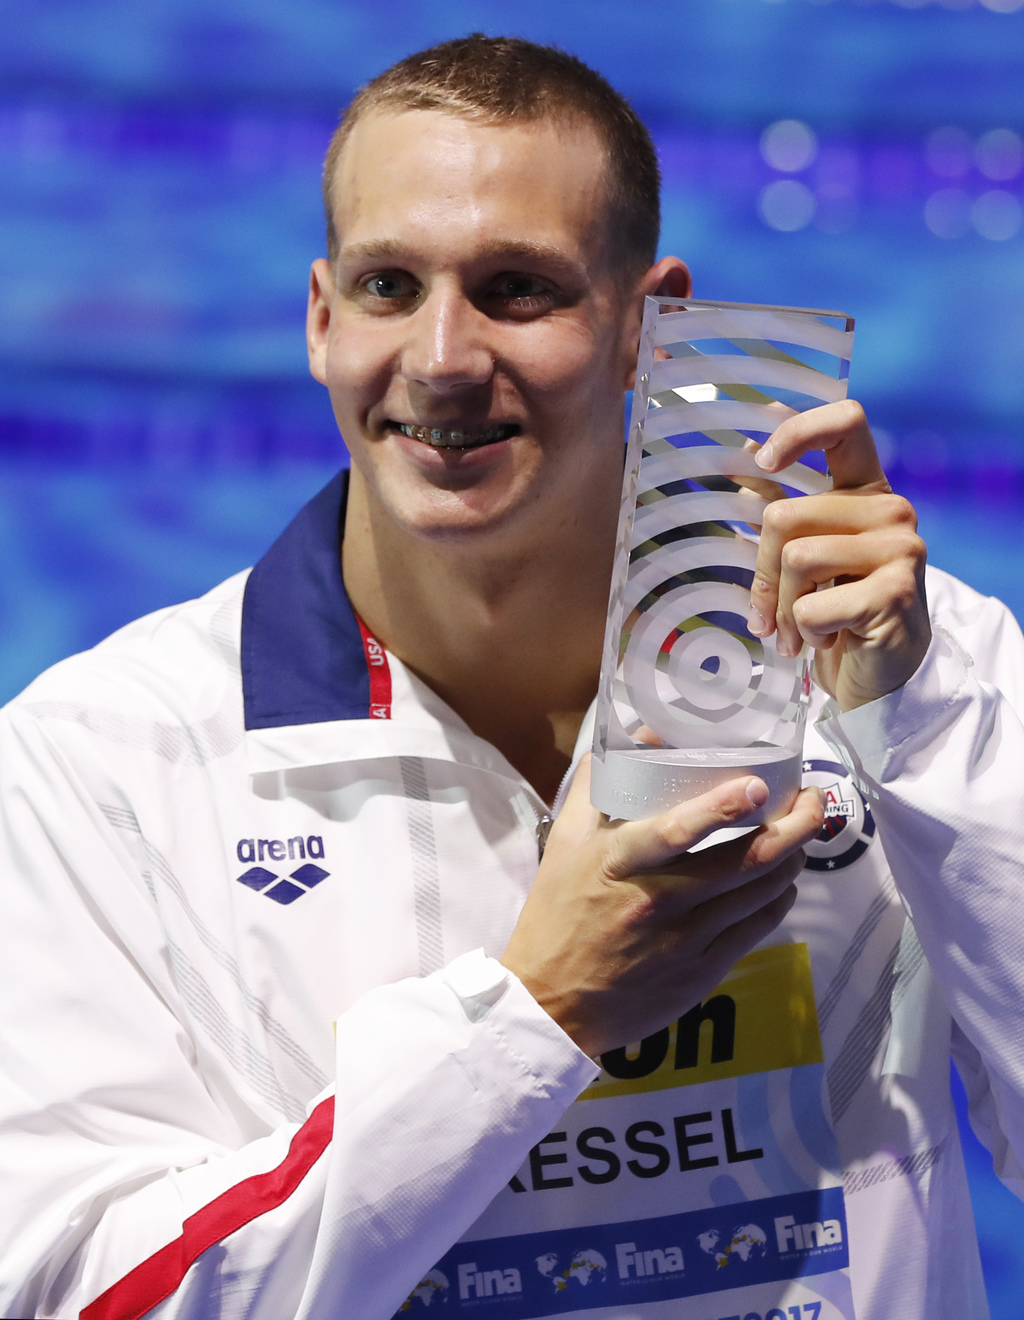 United States' Caeleb Remel Dressel who won 7 gold medals shows off the award as best male athlete during the swimming competitions of the World Aquat...